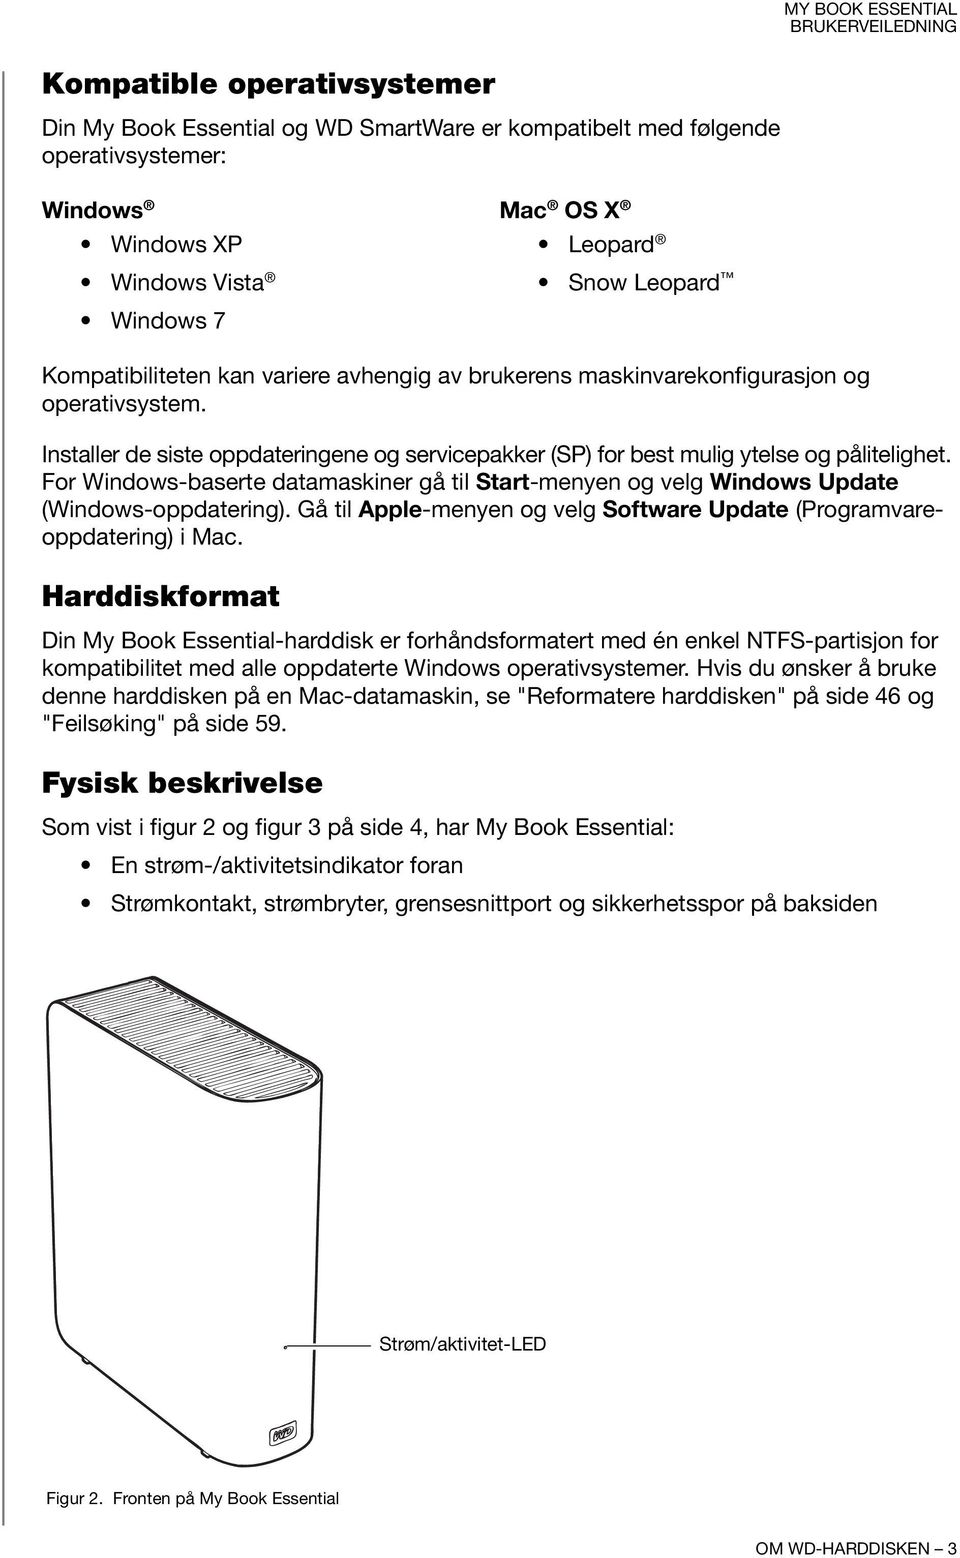 For Windows-baserte datamaskiner gå til Start-menyen og velg Windows Update (Windows-oppdatering). Gå til Apple-menyen og velg Software Update (Programvareoppdatering) i Mac.